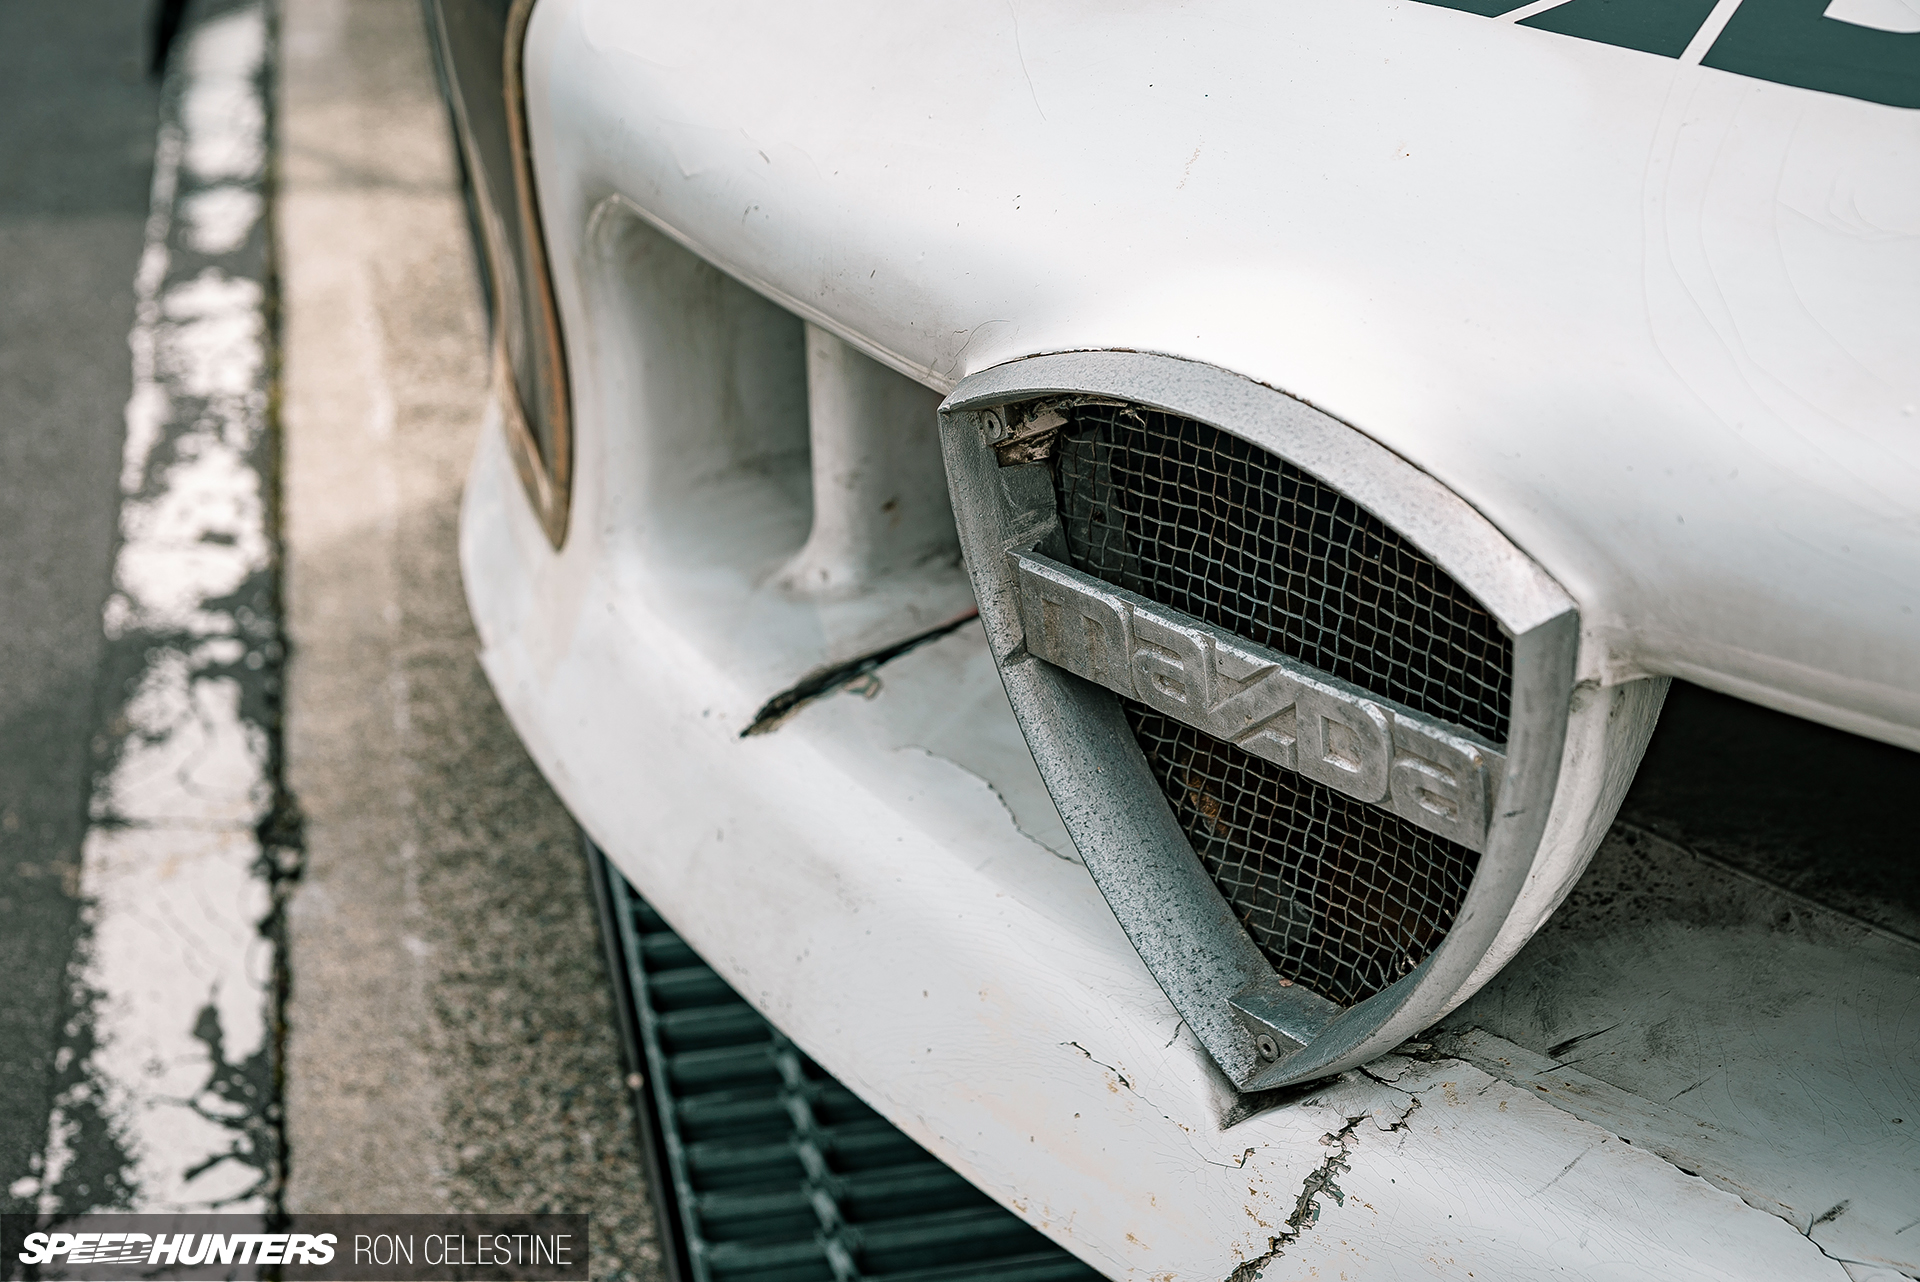 A Long-Lost Le Mans Mazda Rotary Relic Reappears - Speedhunters